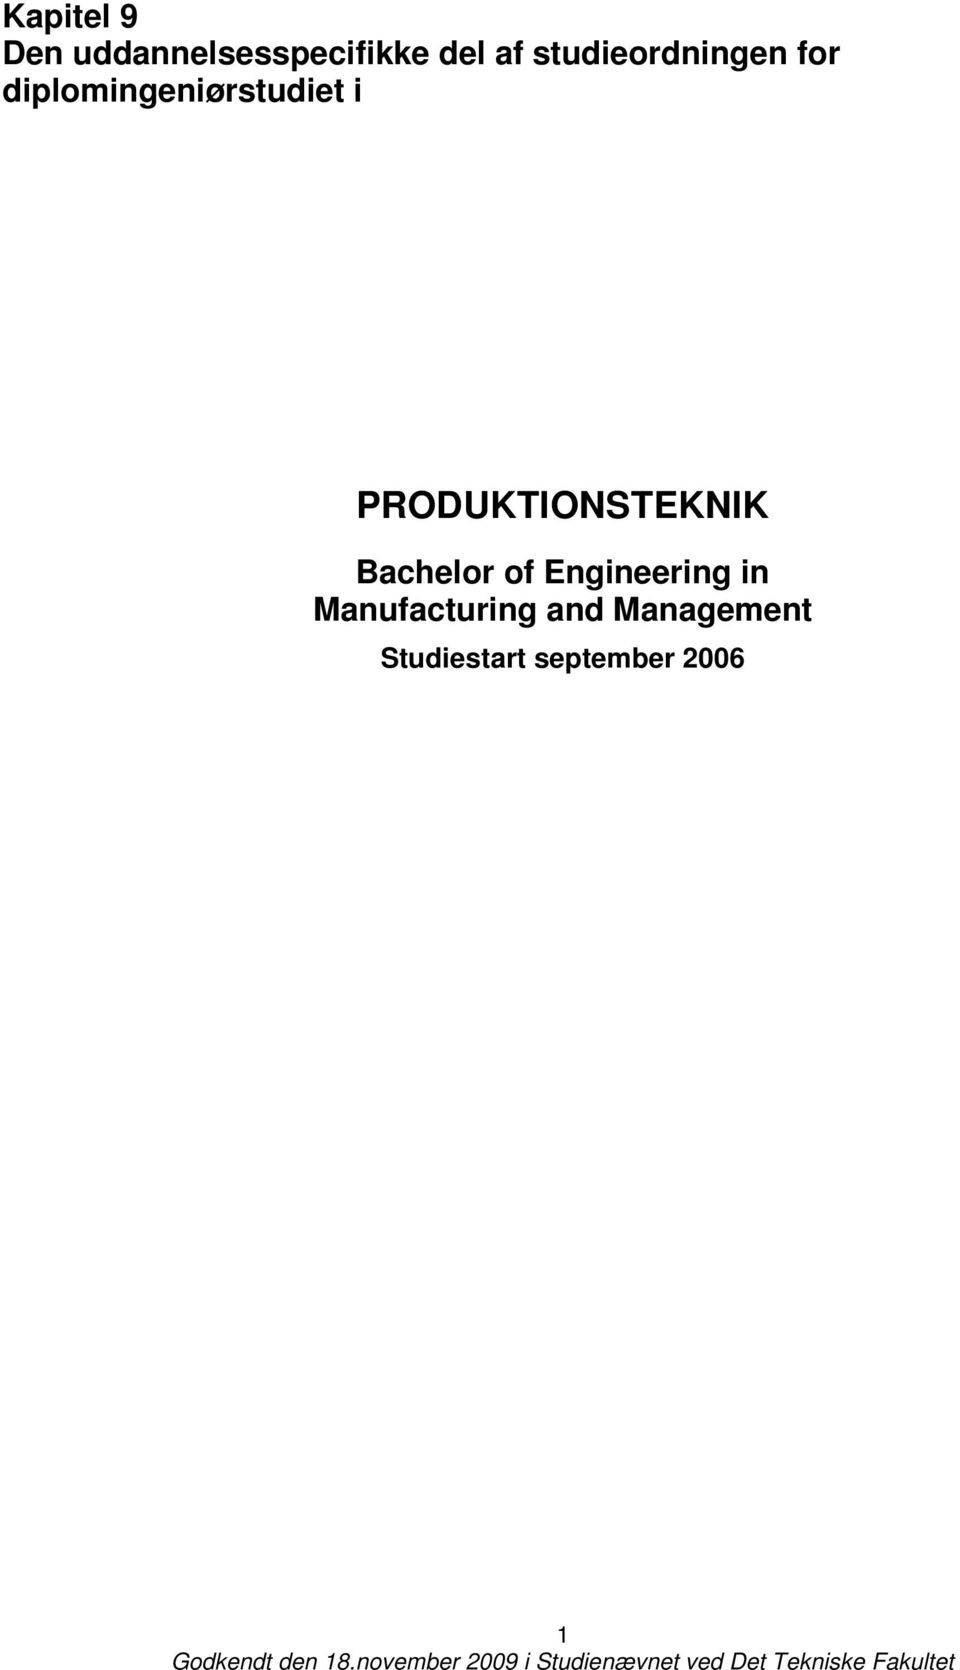 PRODUKTIONSTEKNIK Bachelor of Engineering in